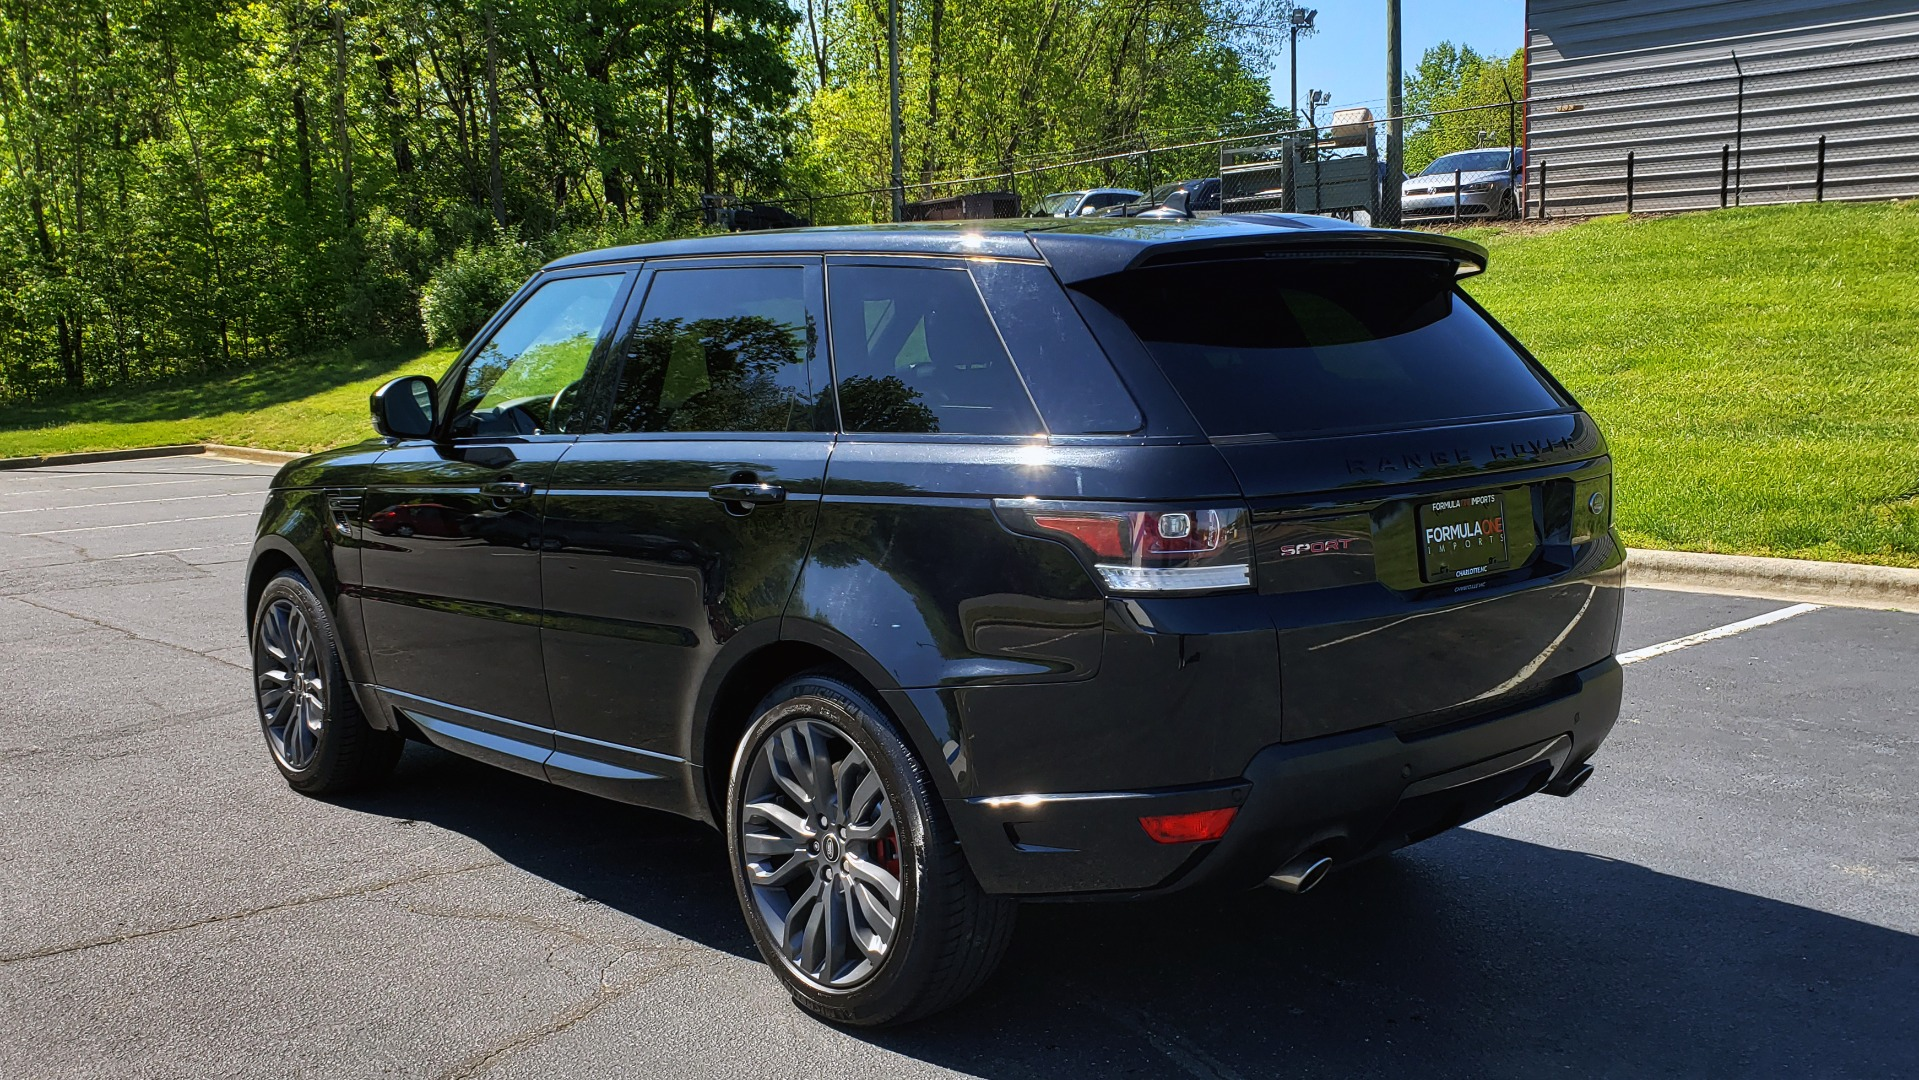 Used 2016 Land Rover RANGE ROVER SPORT SC V6 HSE HST / NAV / PANO-ROOF / MERIDIAN / REARVIEW for sale Sold at Formula Imports in Charlotte NC 28227 4